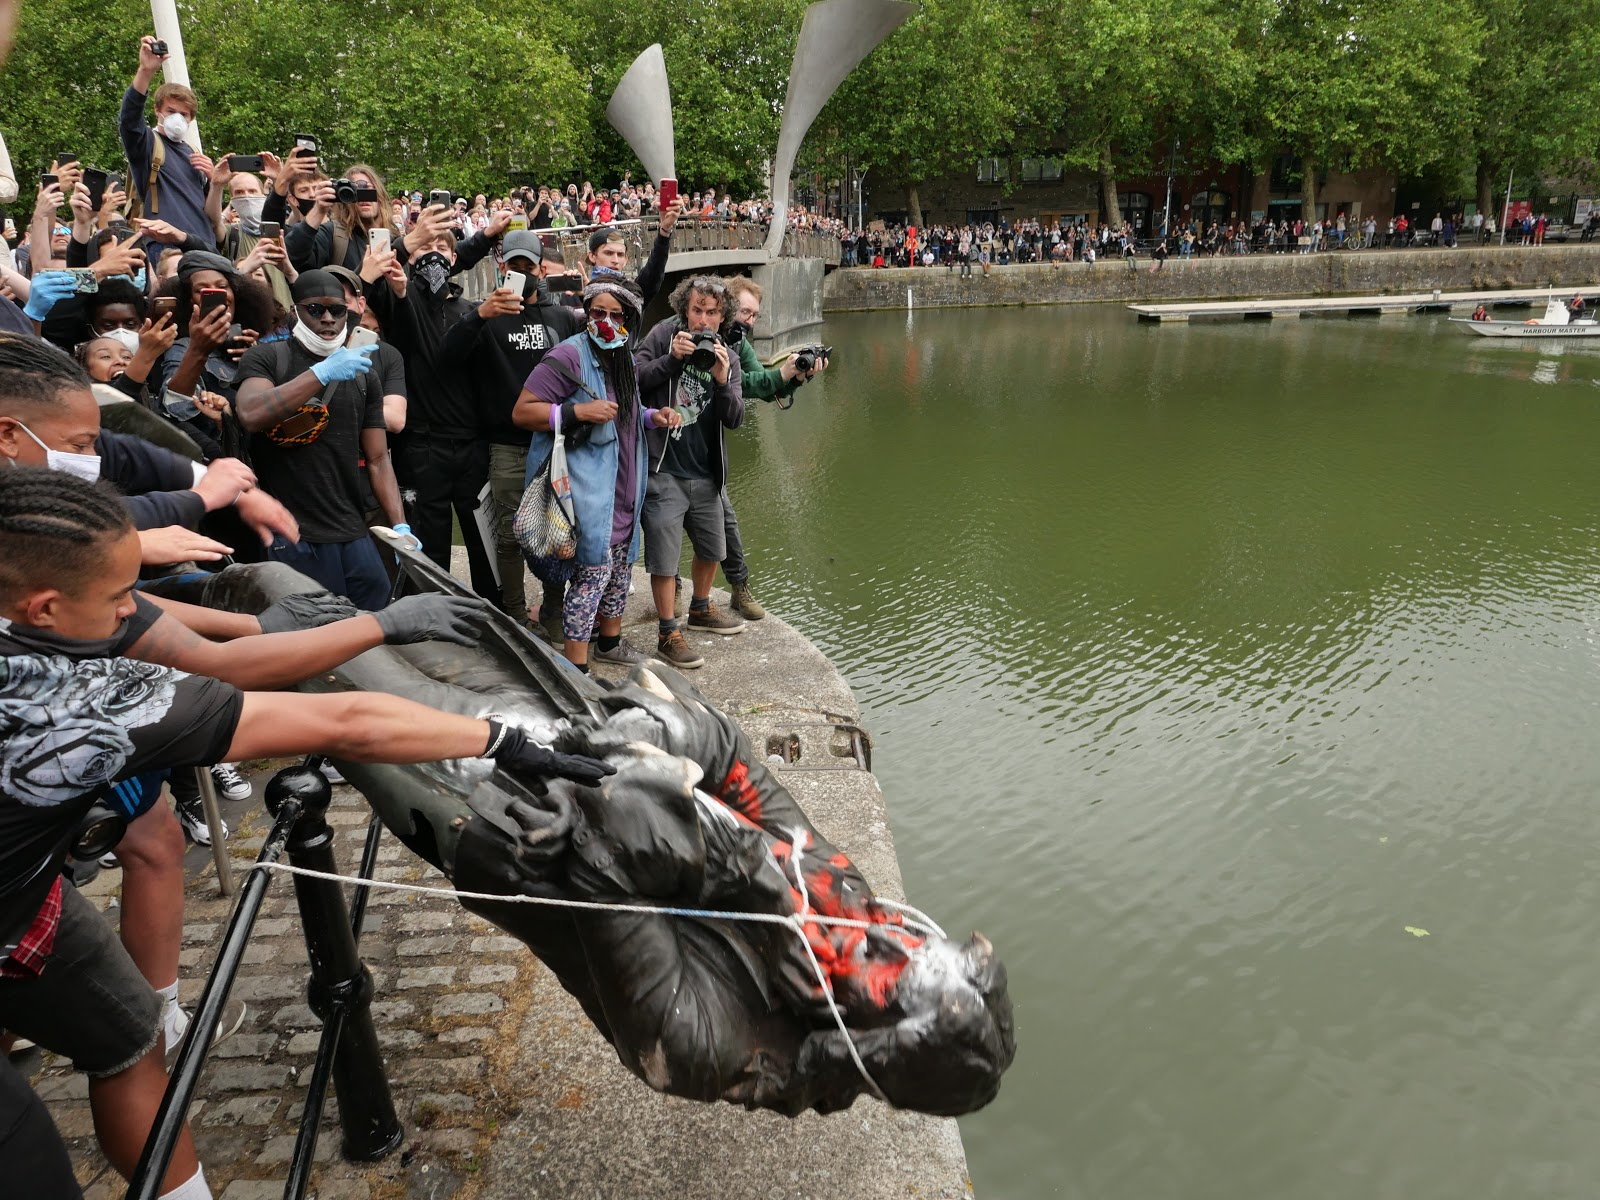 Photo: Crowds gather around the Floating Harbour and stand on Pero's Bridge as the statue of Edward Colston, covered in graffiti and with a rope around its neck is lifted over a fence to be thrown in to the water below.